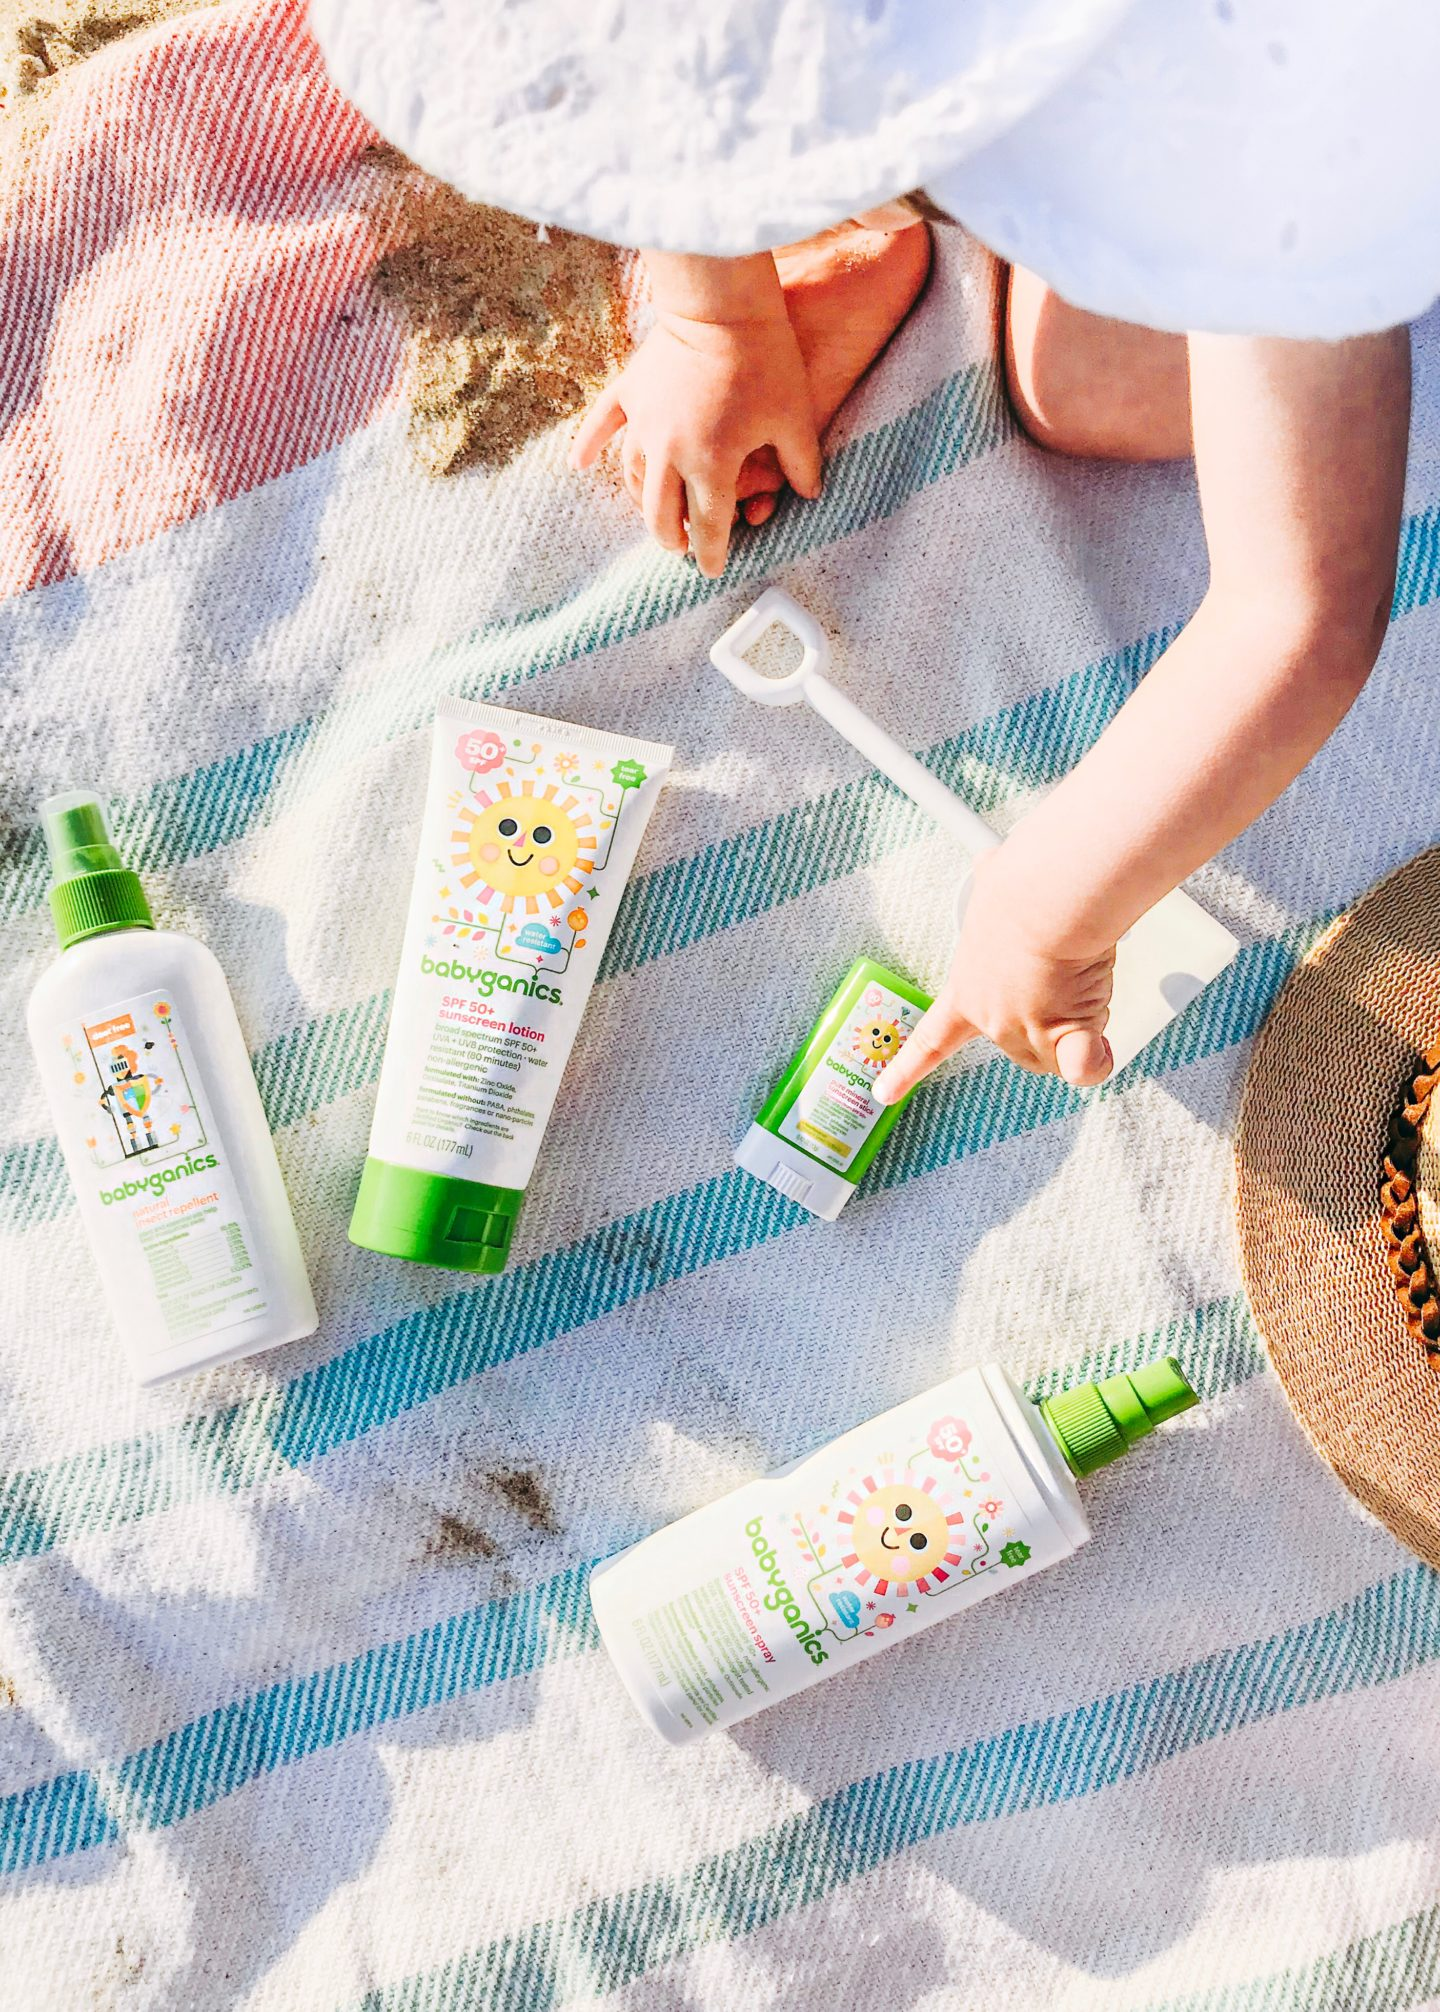 Beach Essentials For Toddler - Babyganics Sunscreen - thecasualfree.com